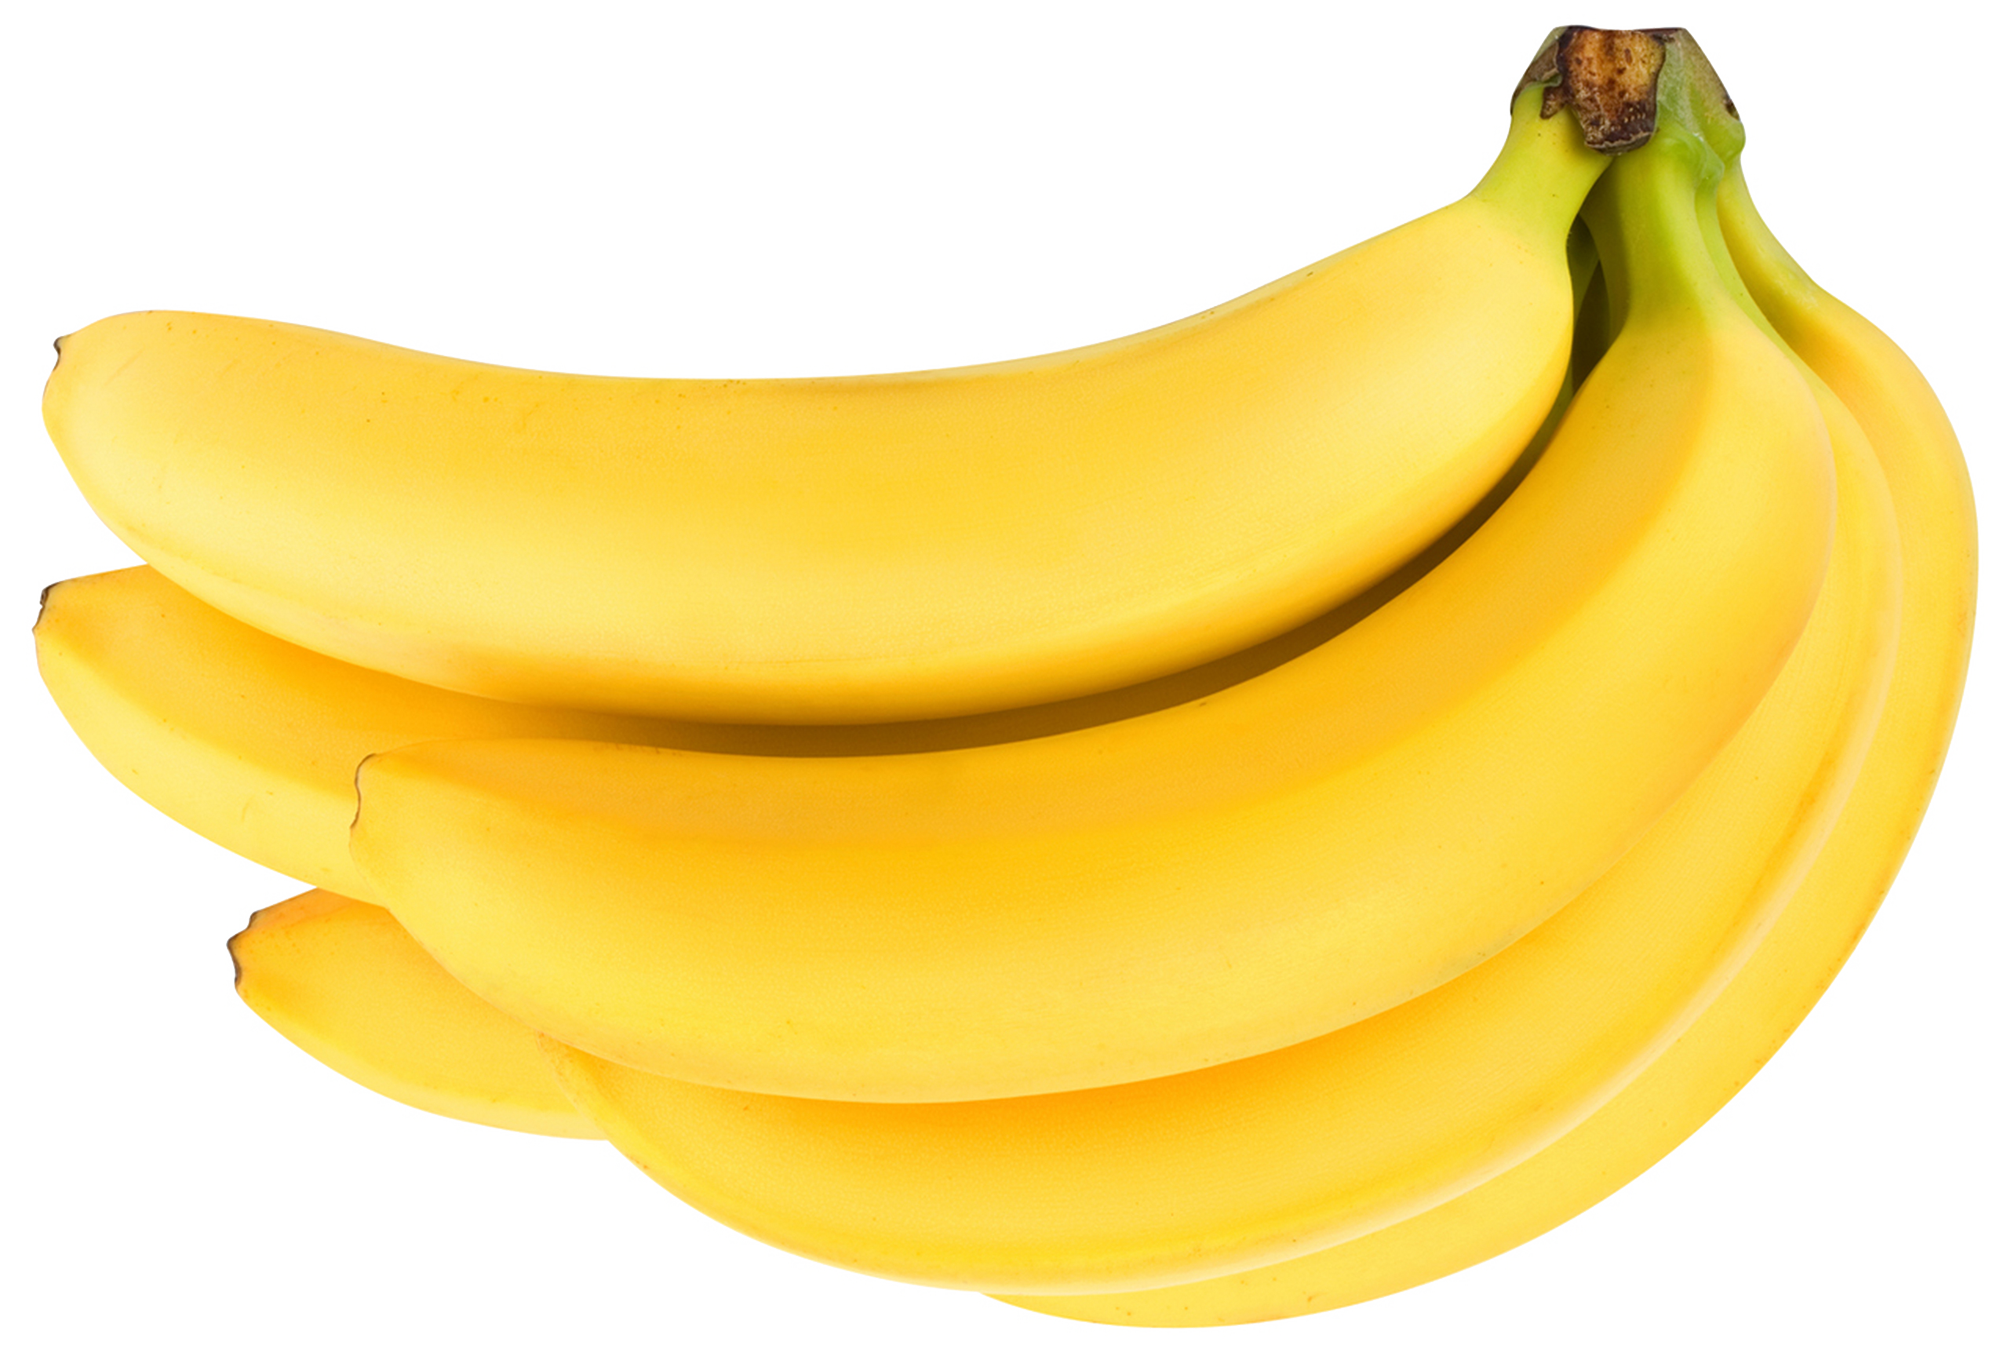 Banana clipart transparent background. Large bananas png gallery